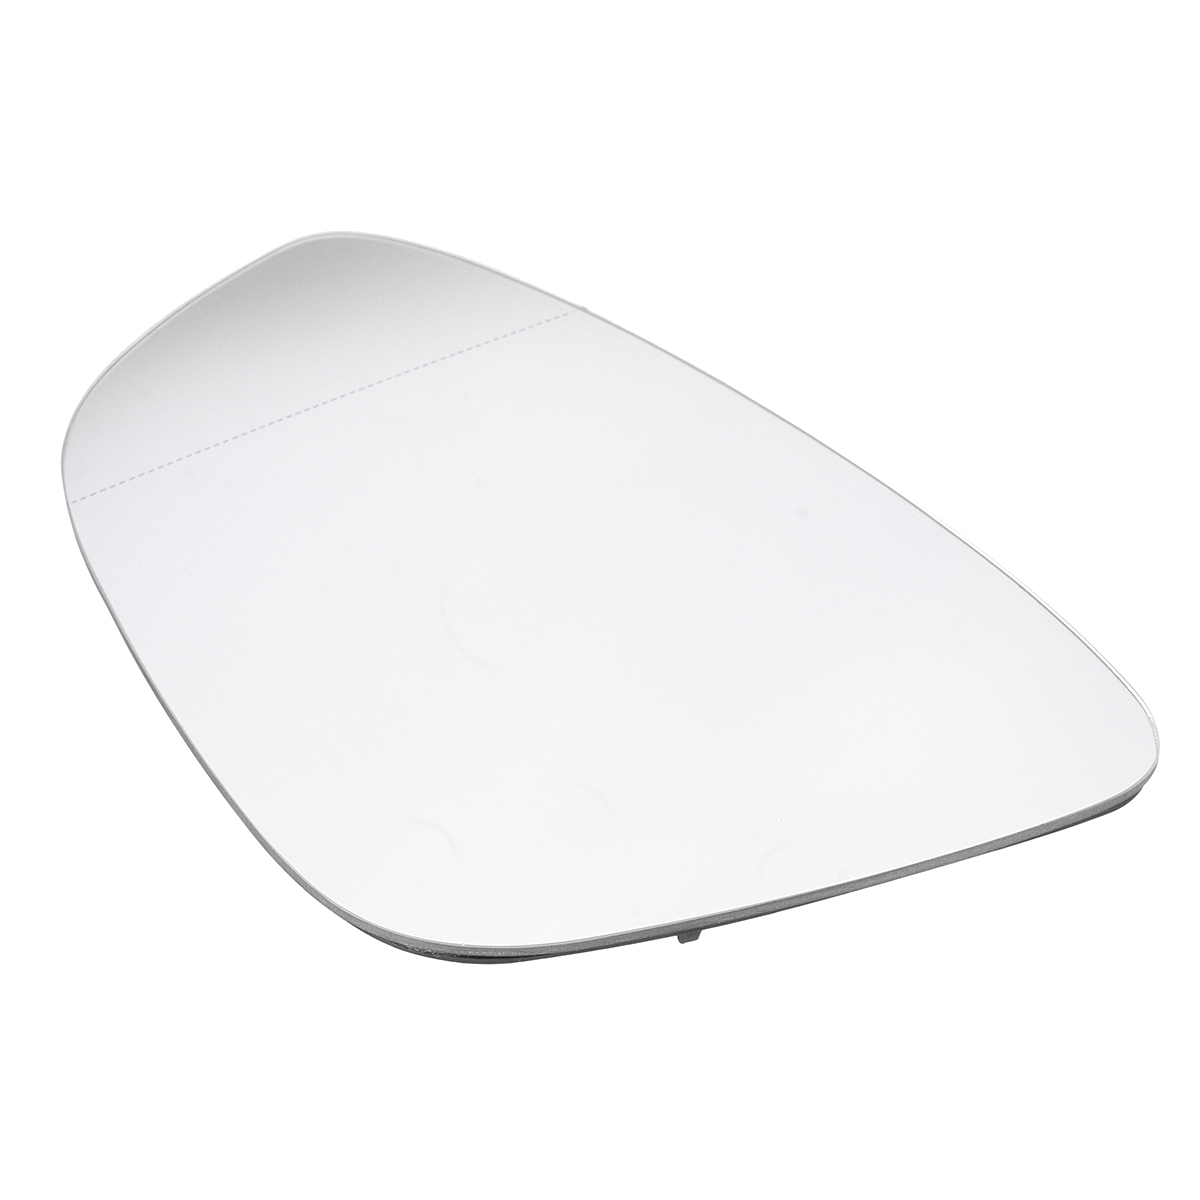 Car Left Side Exterior Wing Mirror Glass Rear View W/He